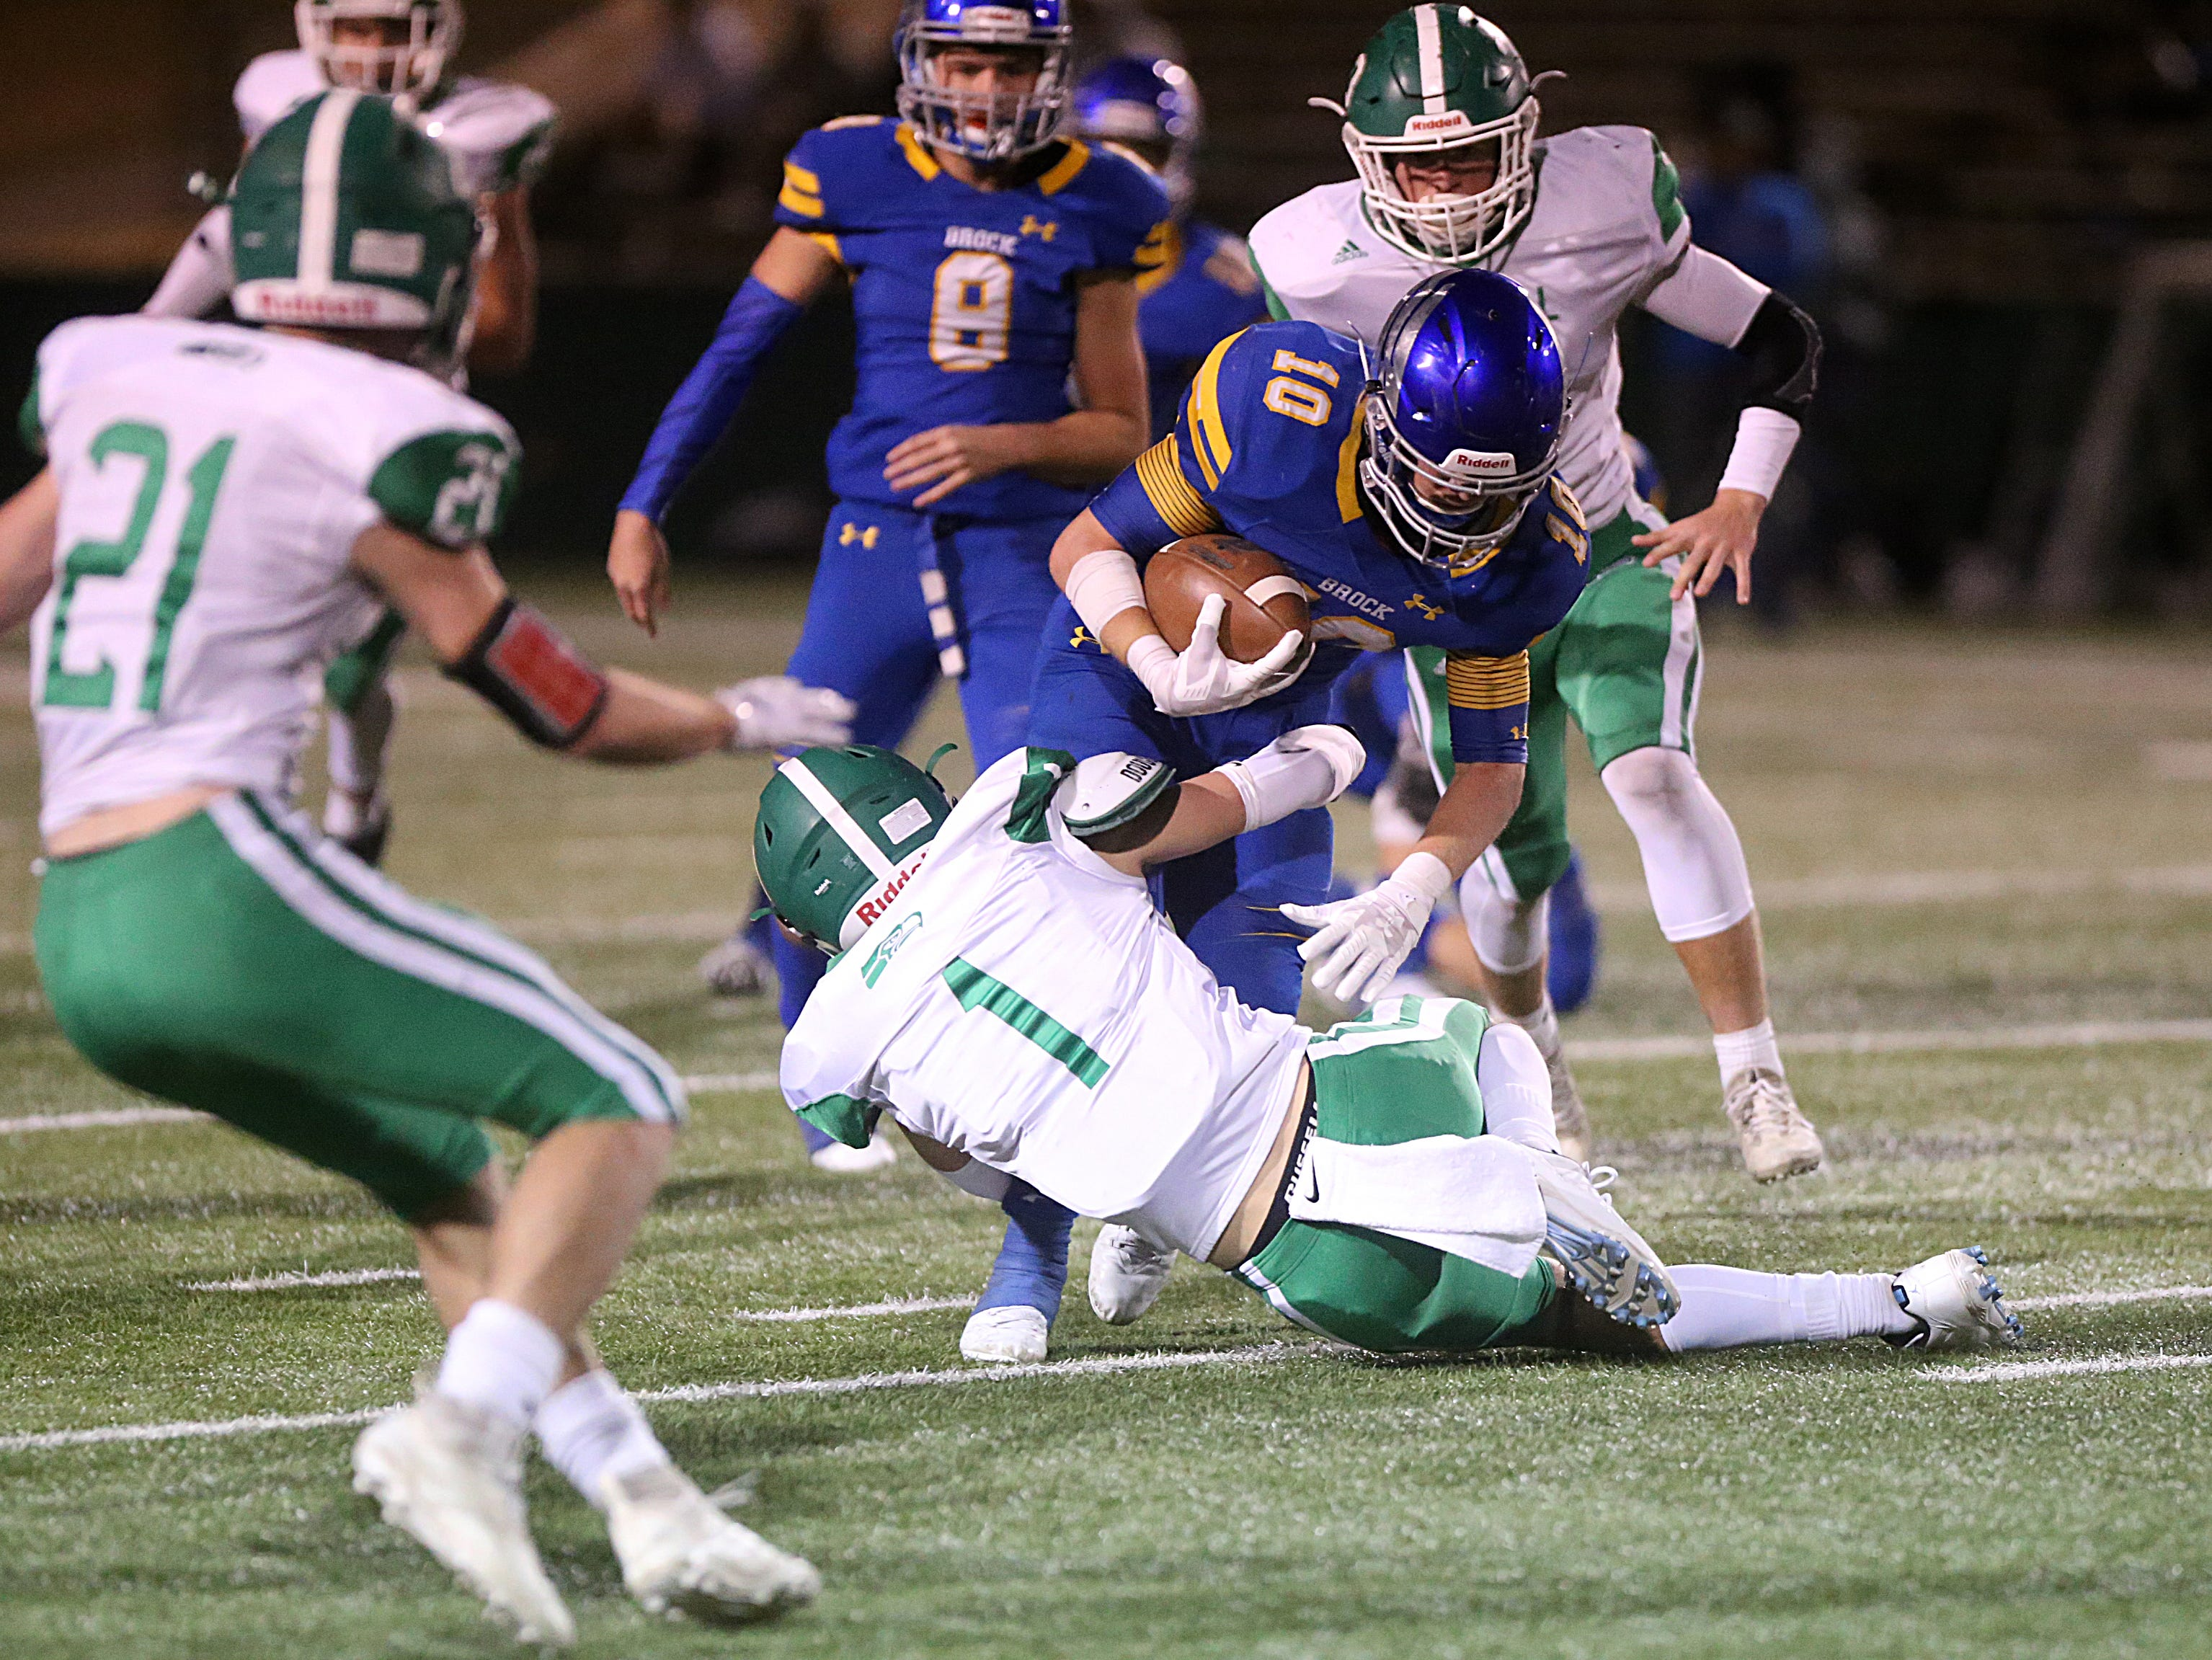 Brock's Toby Morrison (#10) is tackled by Wall's Cameron Barnes (#1) Friday, Nov. 30, 2018, during their game at Shotwell Stadium in Abilene. Wall lost 13 to 35.